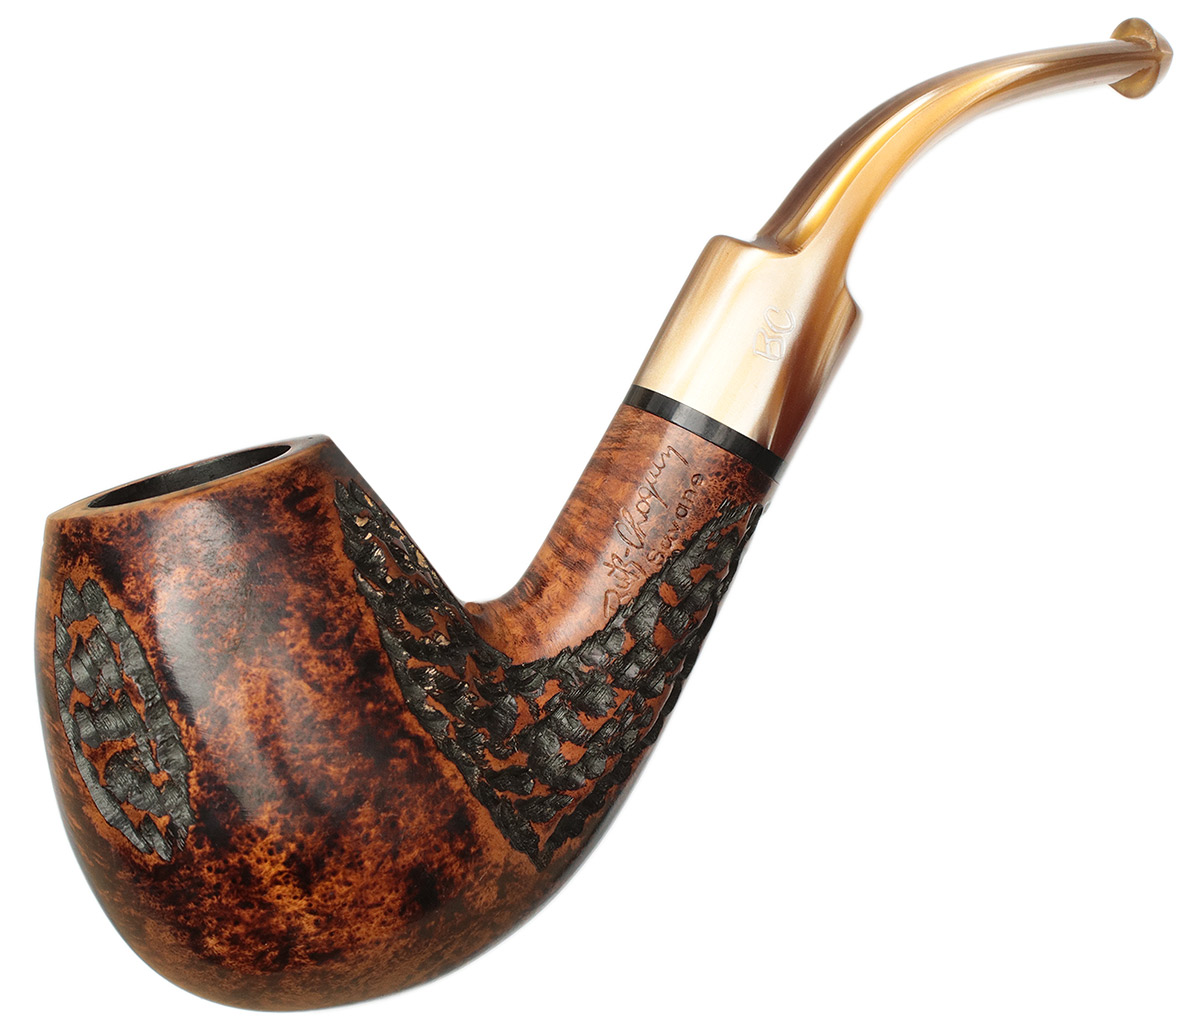 French Estate Butz-Choquin Savane Partially Rusticated (1310) (Unsmoked)